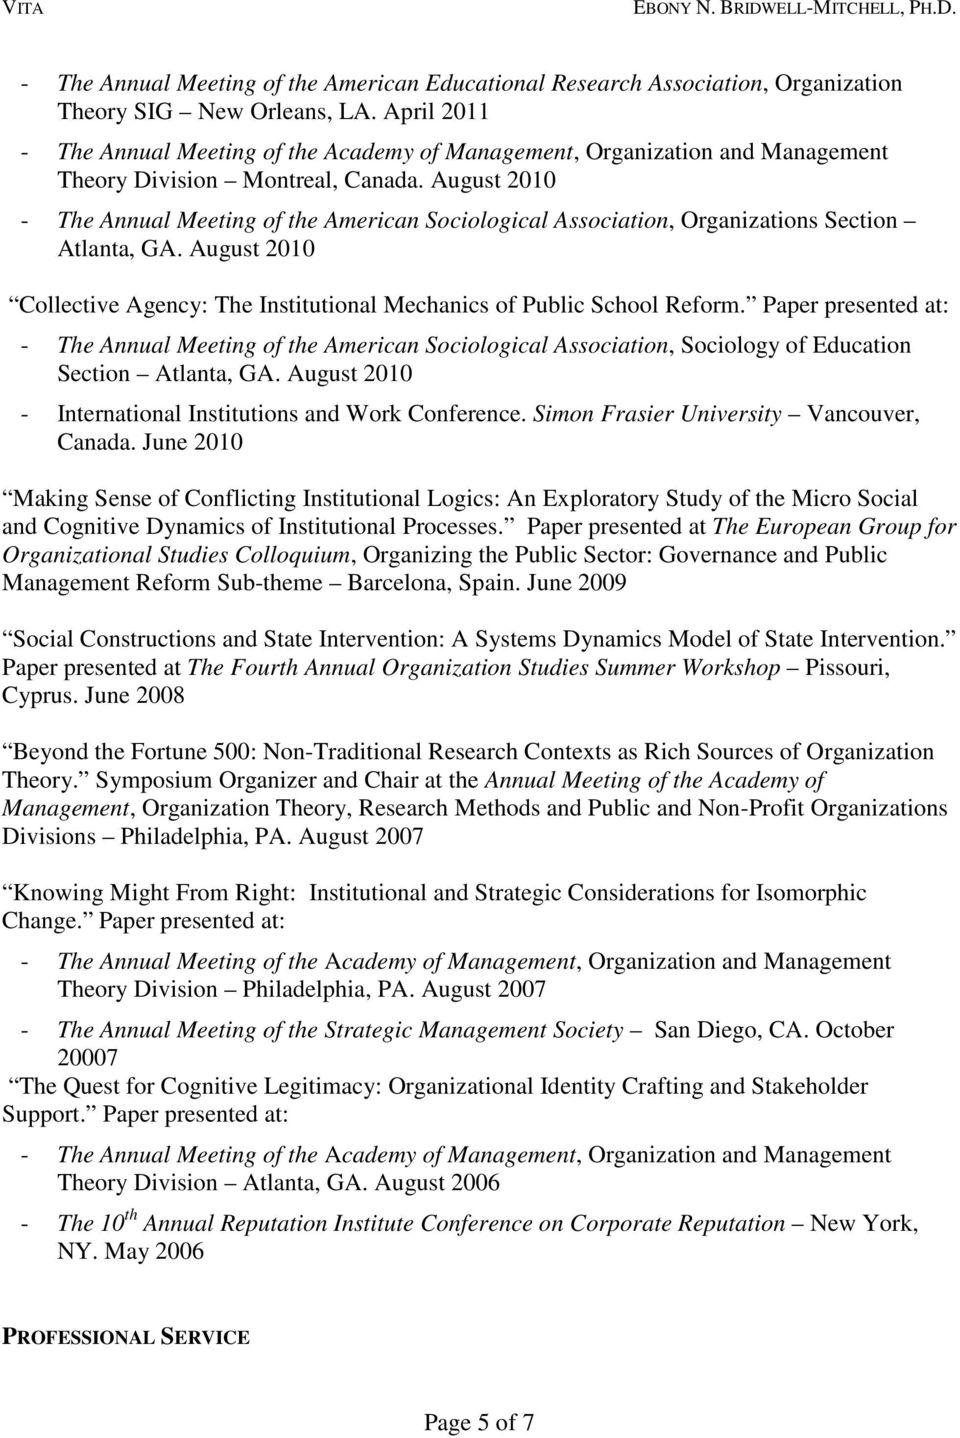 Paper presented at: - The Annual Meeting of the American Sociological Association, Sociology of Education Section Atlanta, GA. August 2010 - International Institutions and Work Conference.